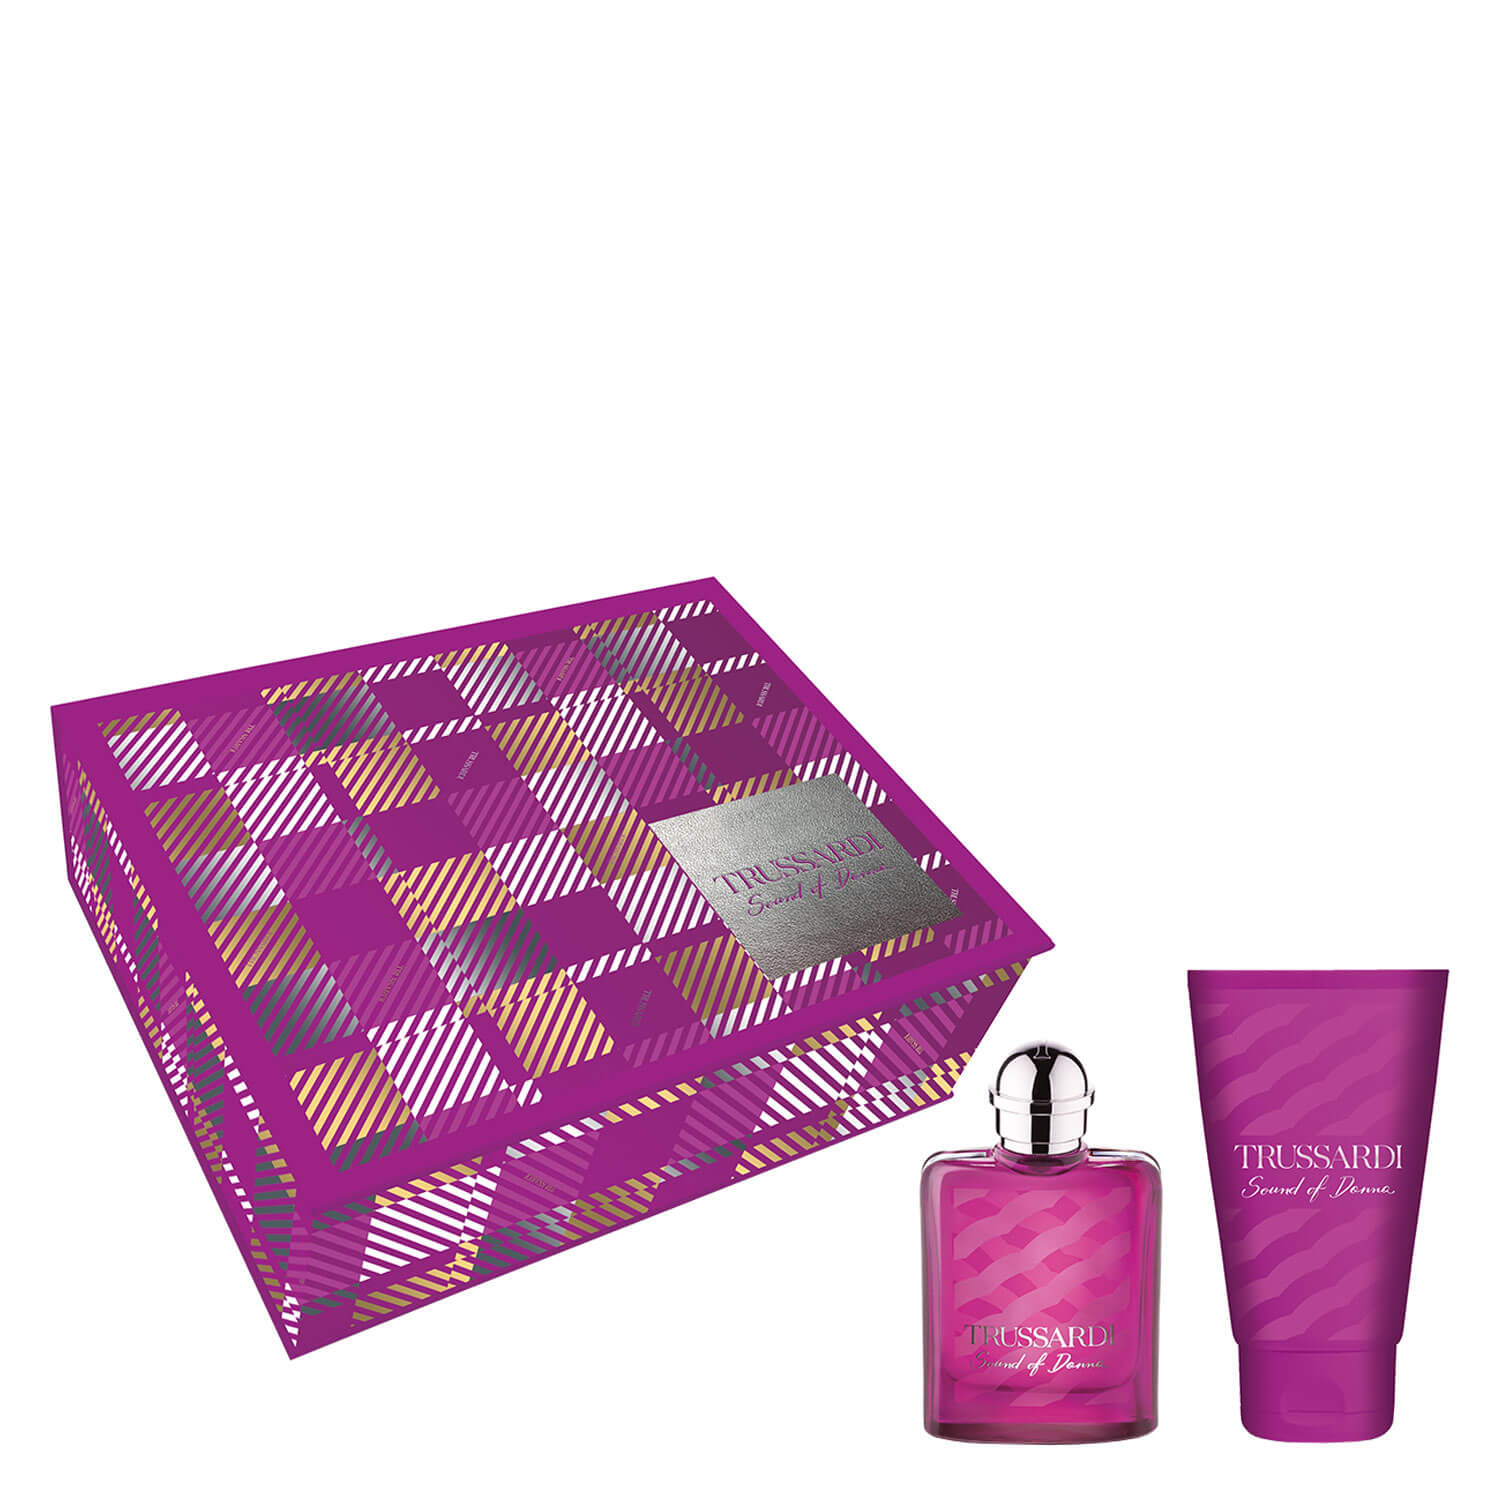 Sound of Donna - Eau de Parfum Set